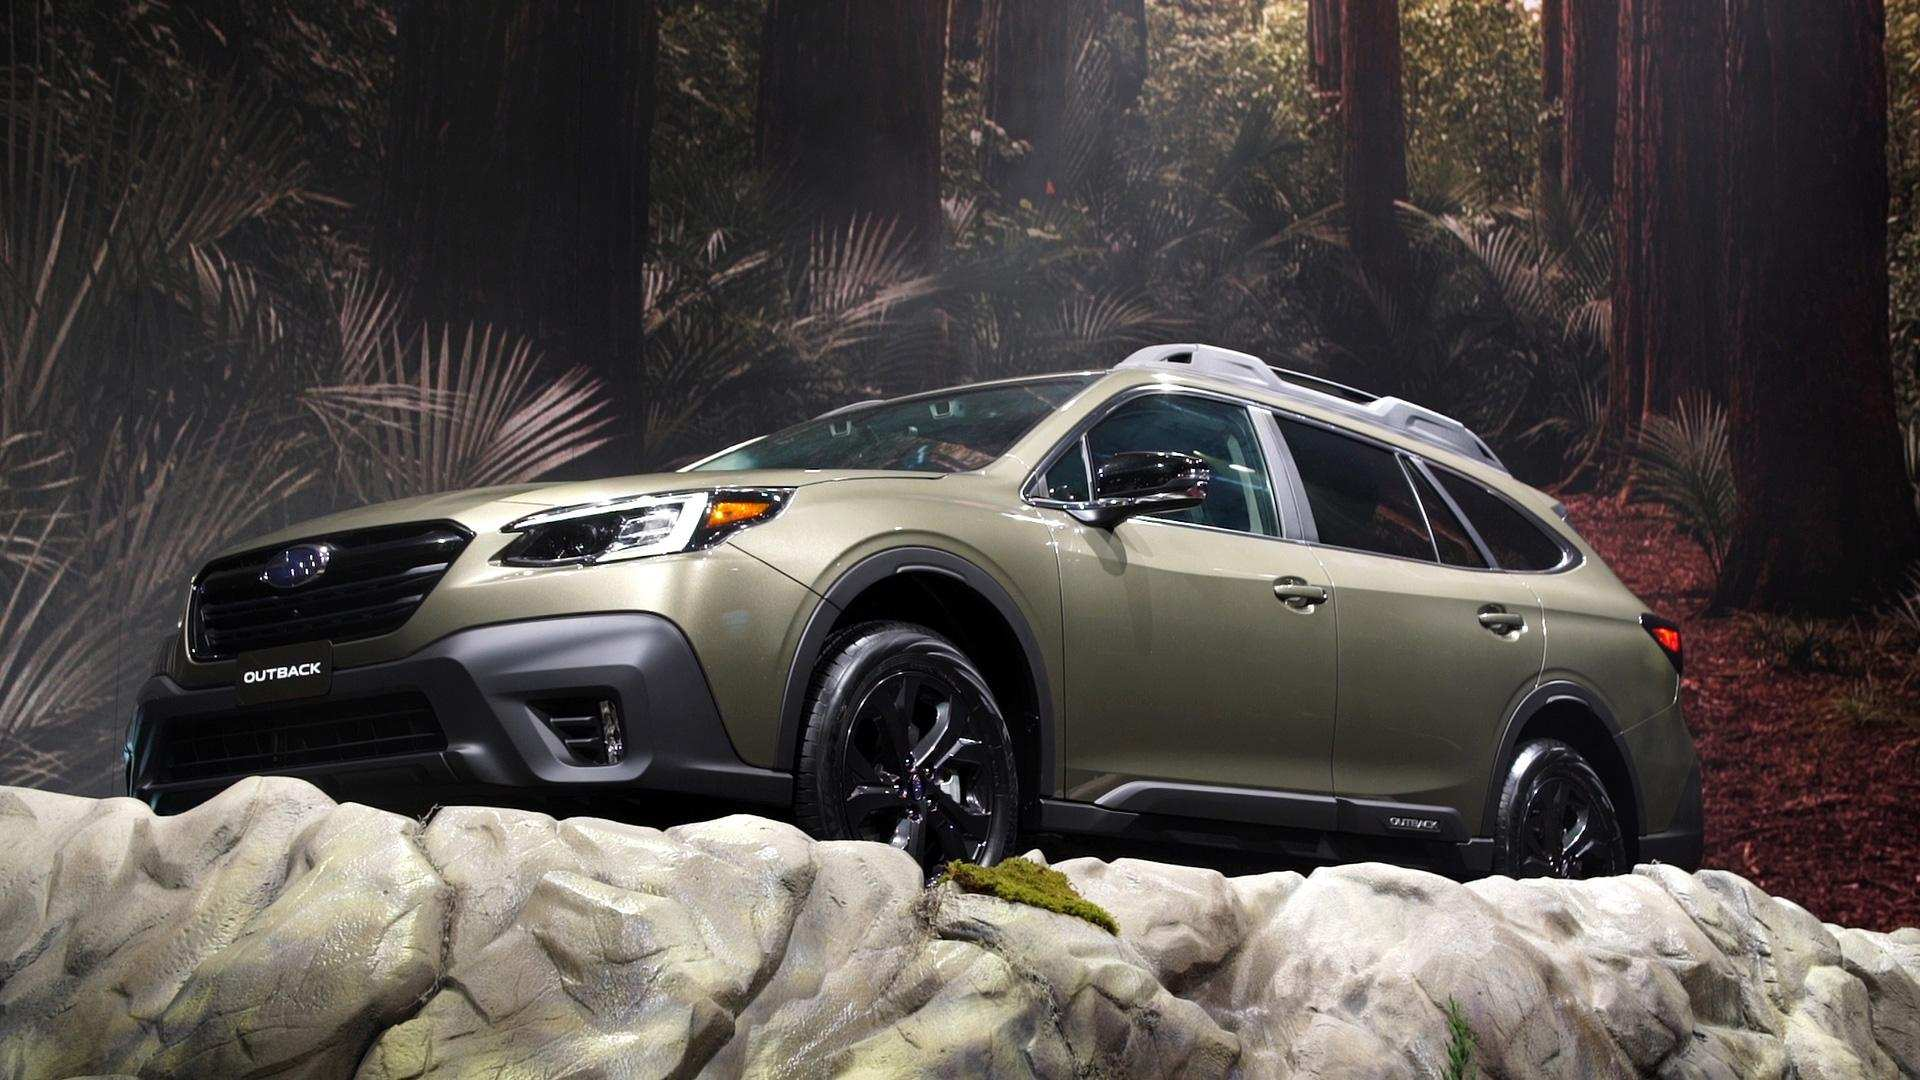 39 New 2020 Subaru Outback Ground Clearance Release